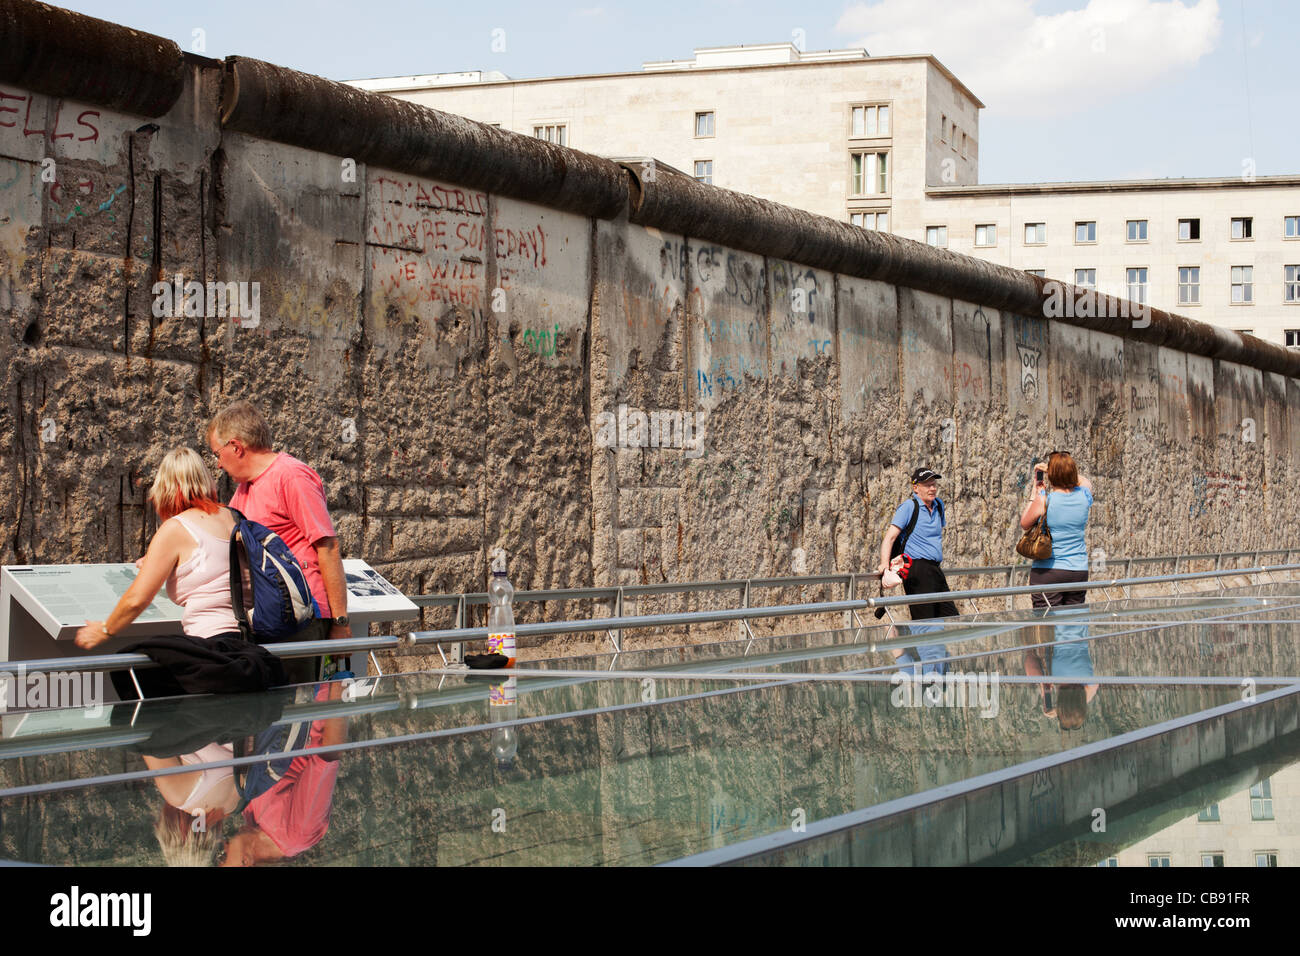 Sightseers at the Berlin Wall Monument - a preserved section of the Berlin Wall that formerly separated East from - Stock Image